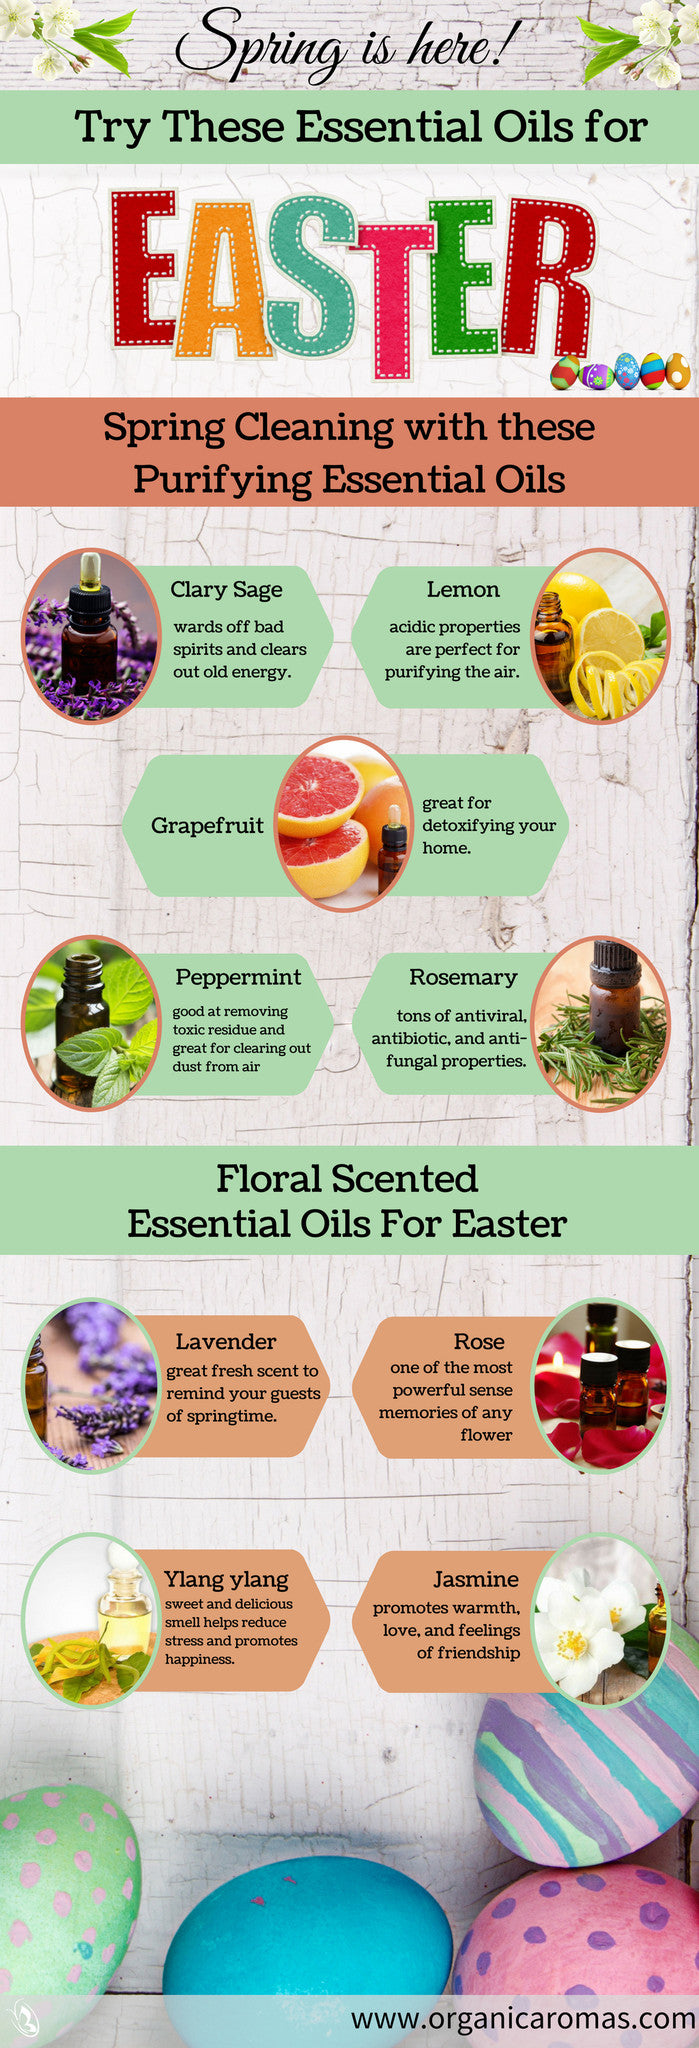 Essential Oils for Easter Infographic